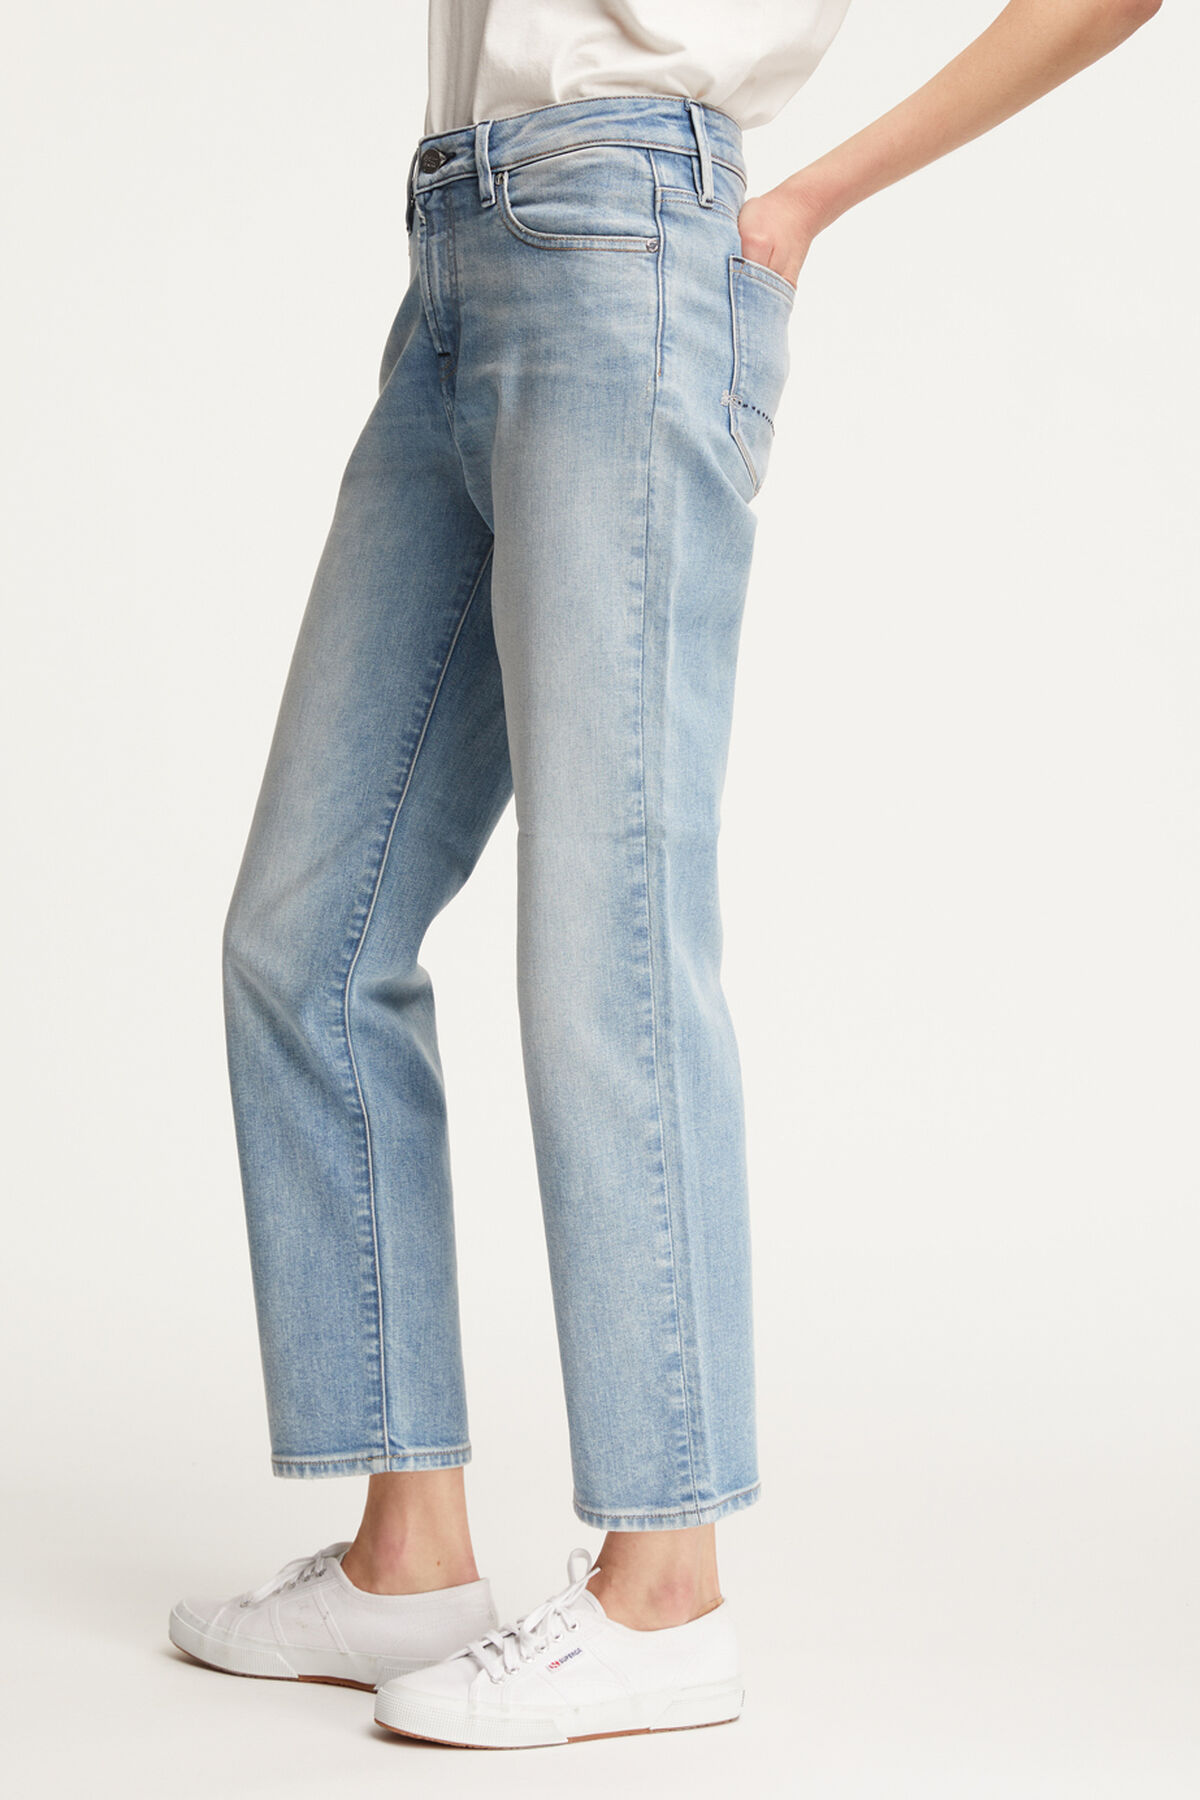 BARDOT STRAIGHT Vintage Indigo Denim - High-rise, Straight Fit